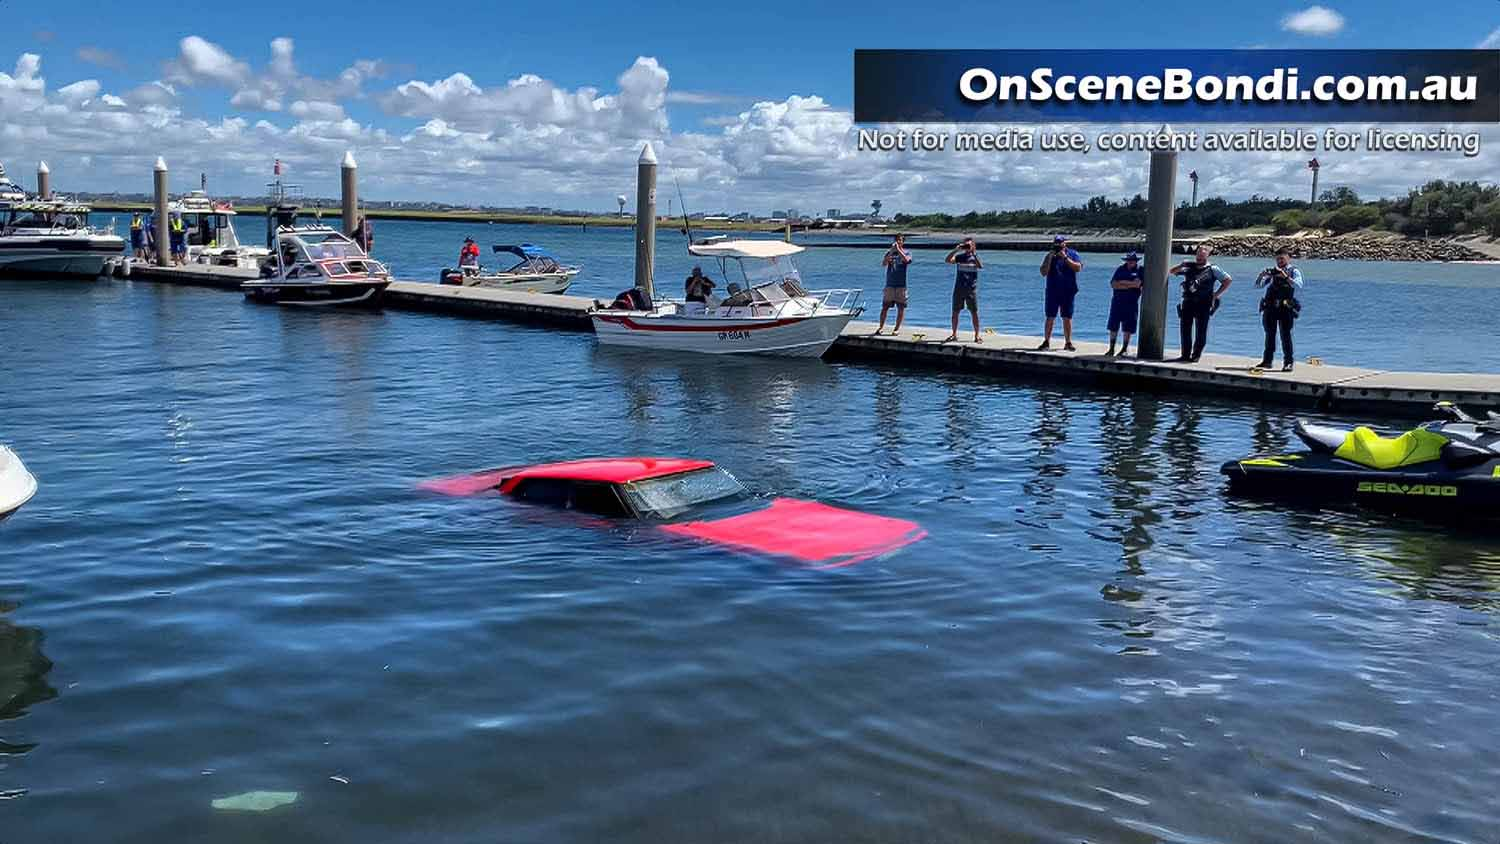 Car plunges underwater after losing traction at Botany Boat Ramp